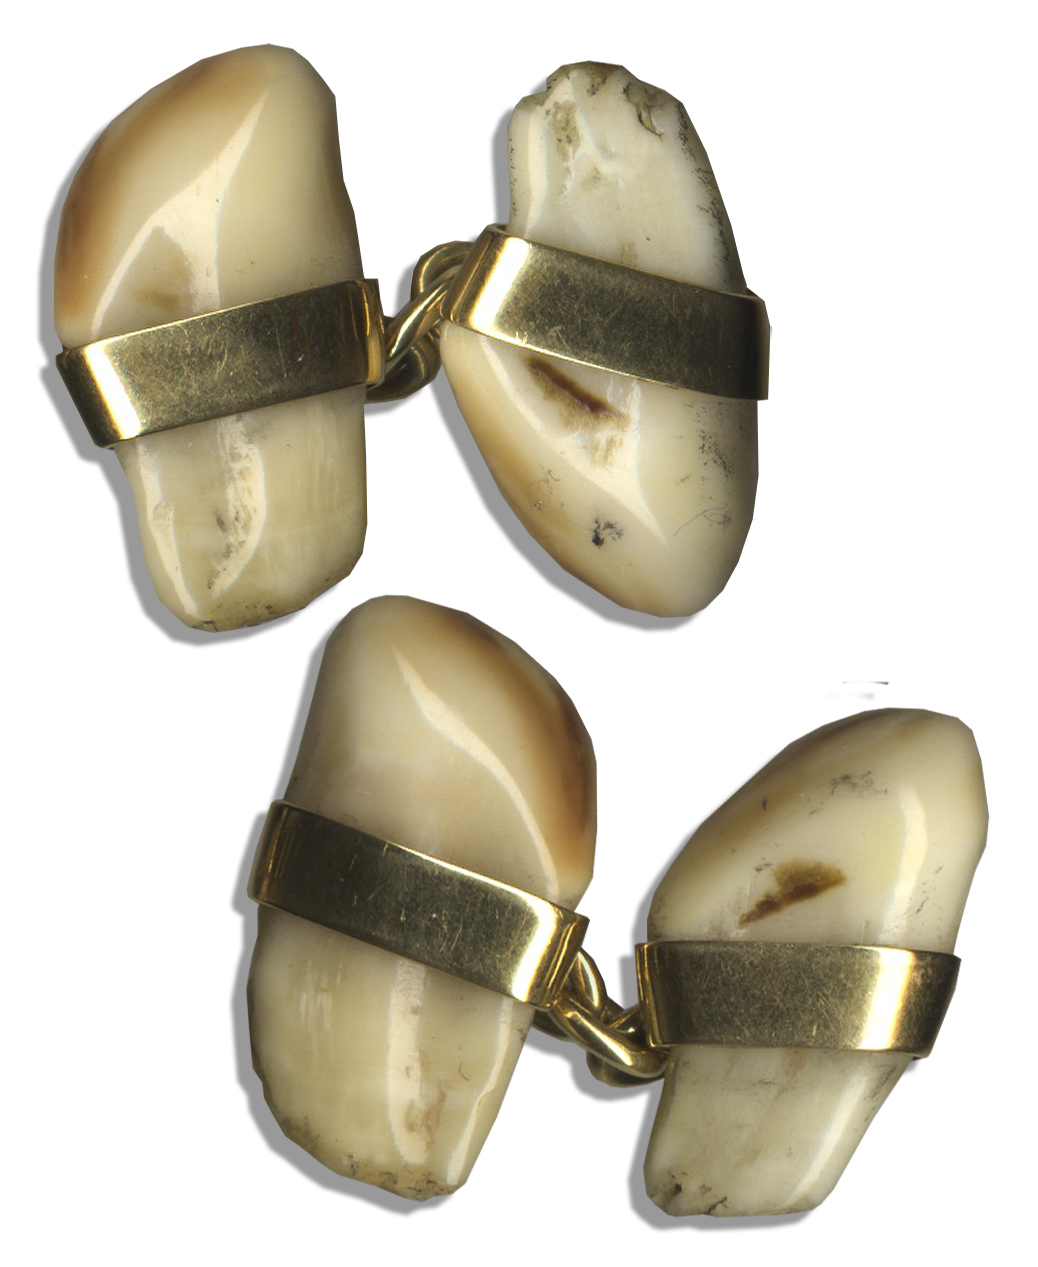 King Edward Memorabilia Cufflinks Personally Owned by The Duke & Duchess of Windsor -- Gold Jewelry With Deer Teeth